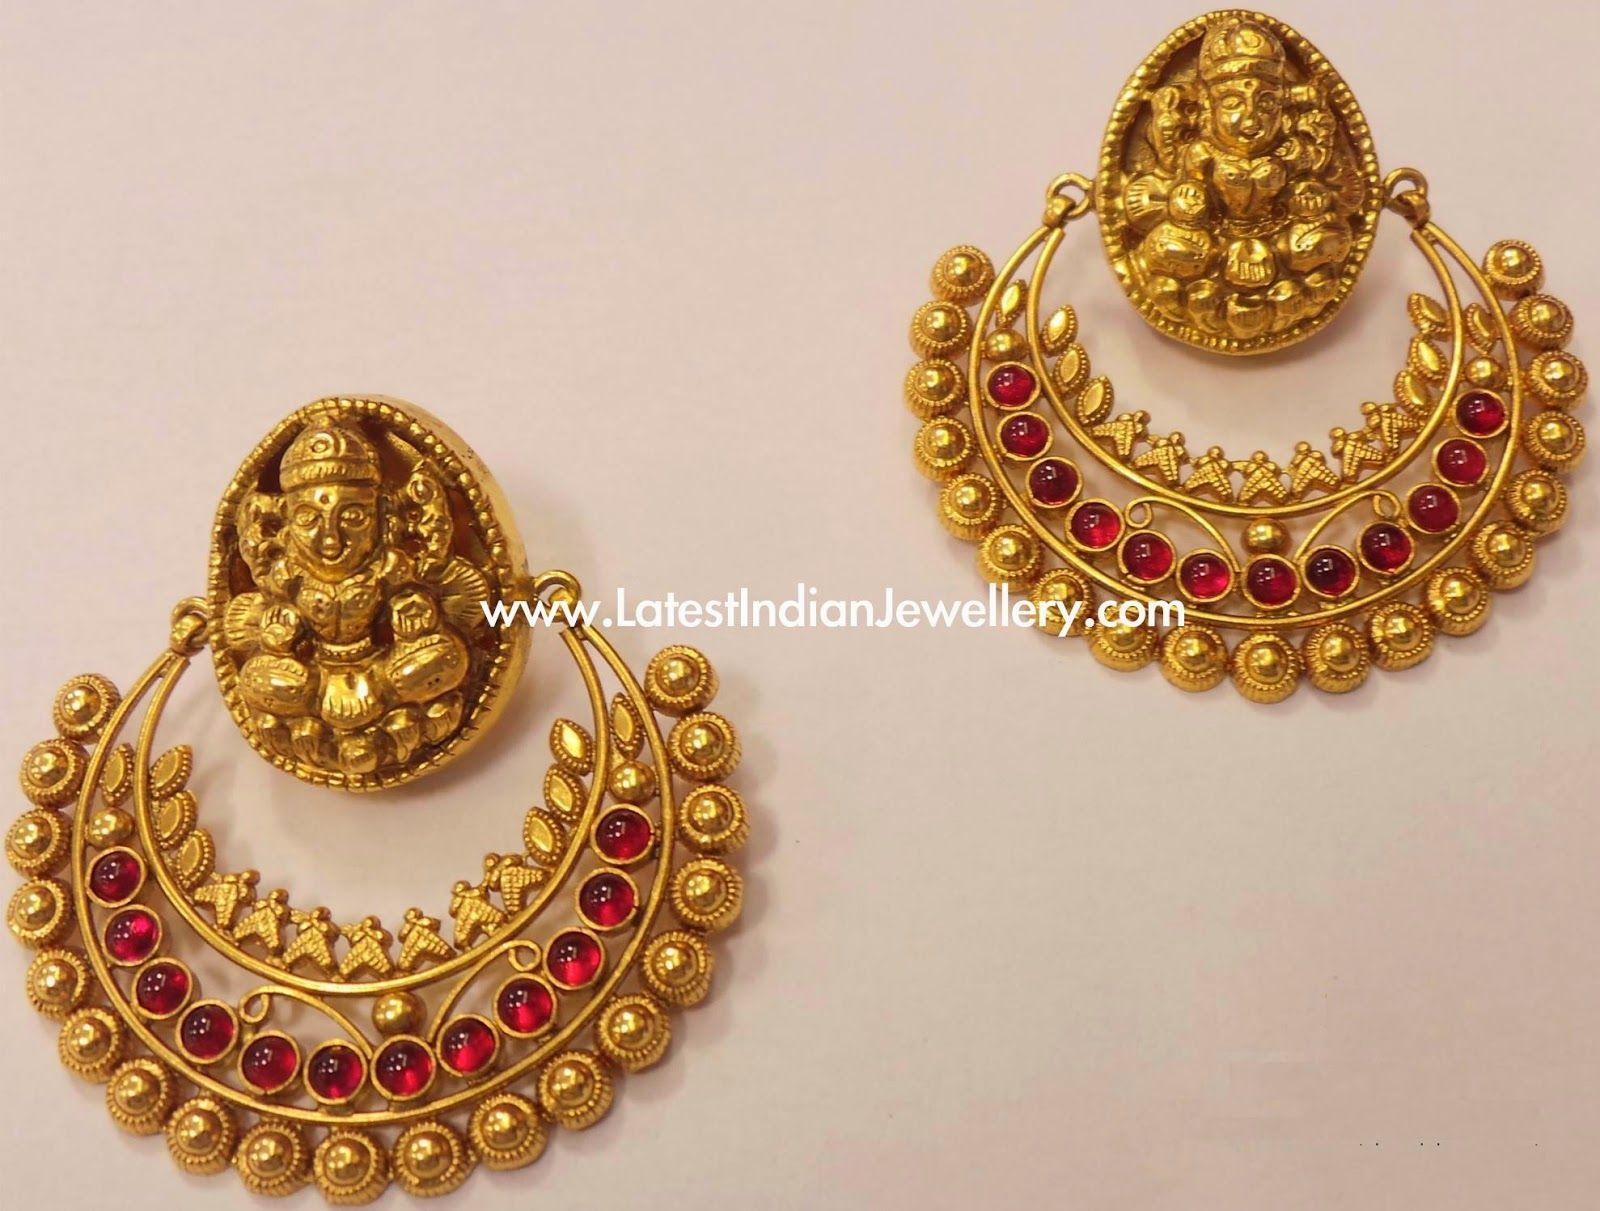 Ram Leela Antique Gold Earrings